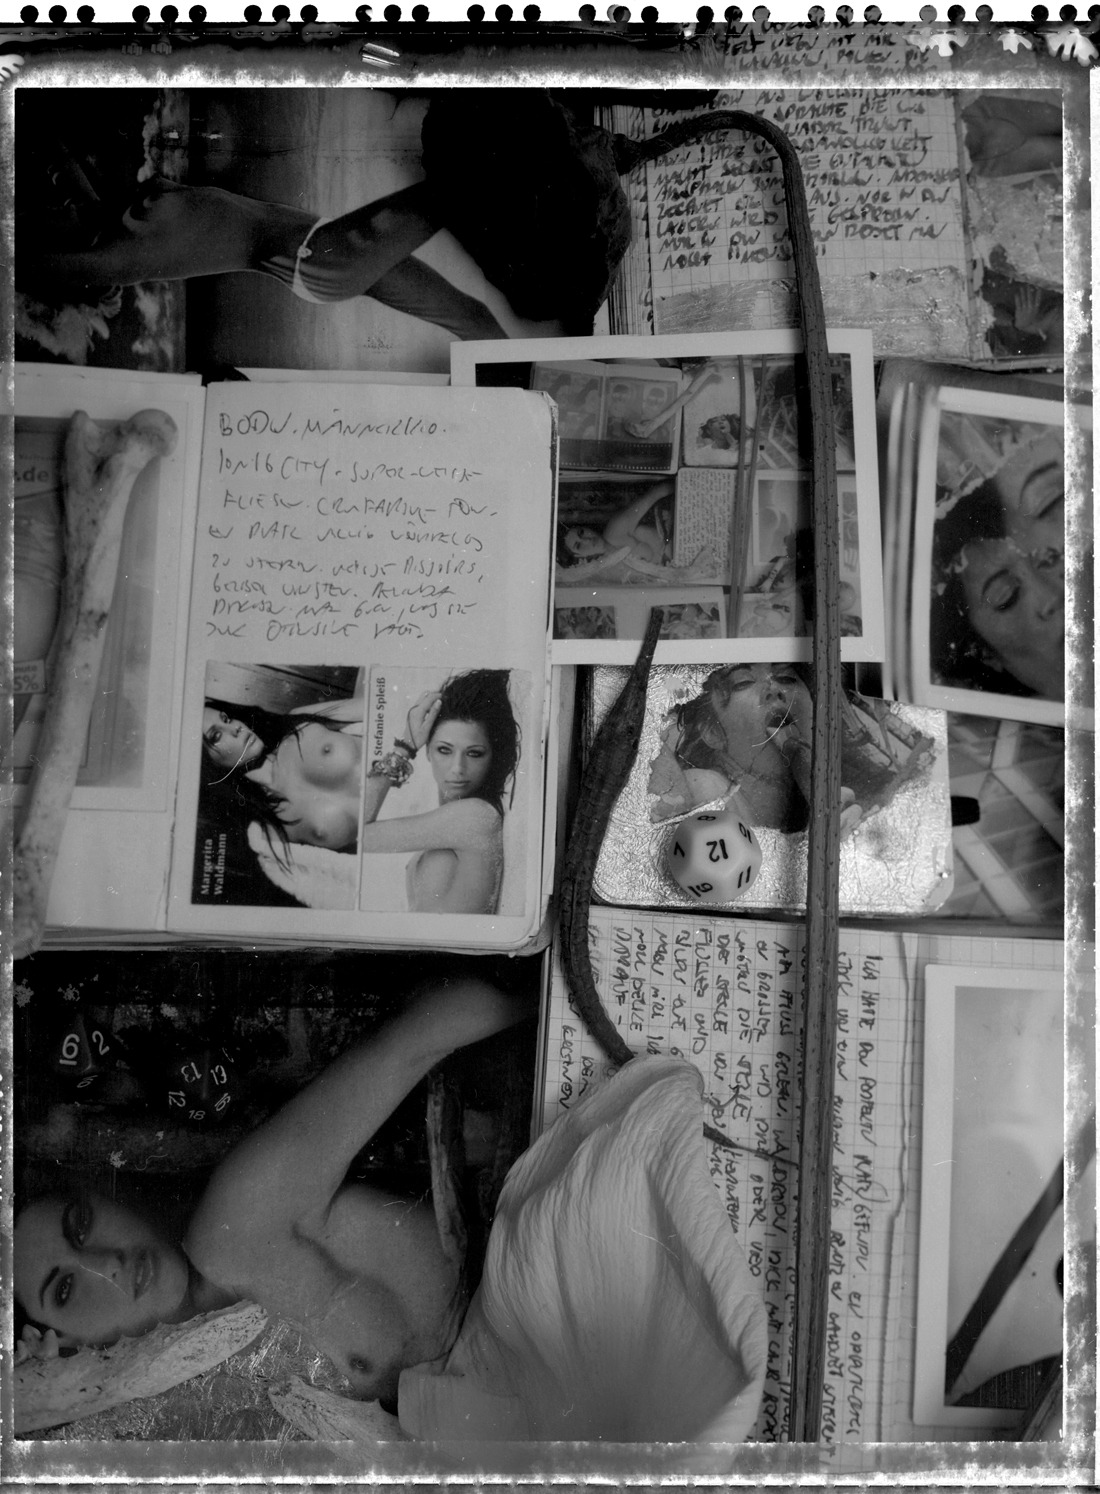 diaries (closer) (next series will be diary pages with flowers…promised…) Camera: Arca, Film: Polaroid 55, scanned negative